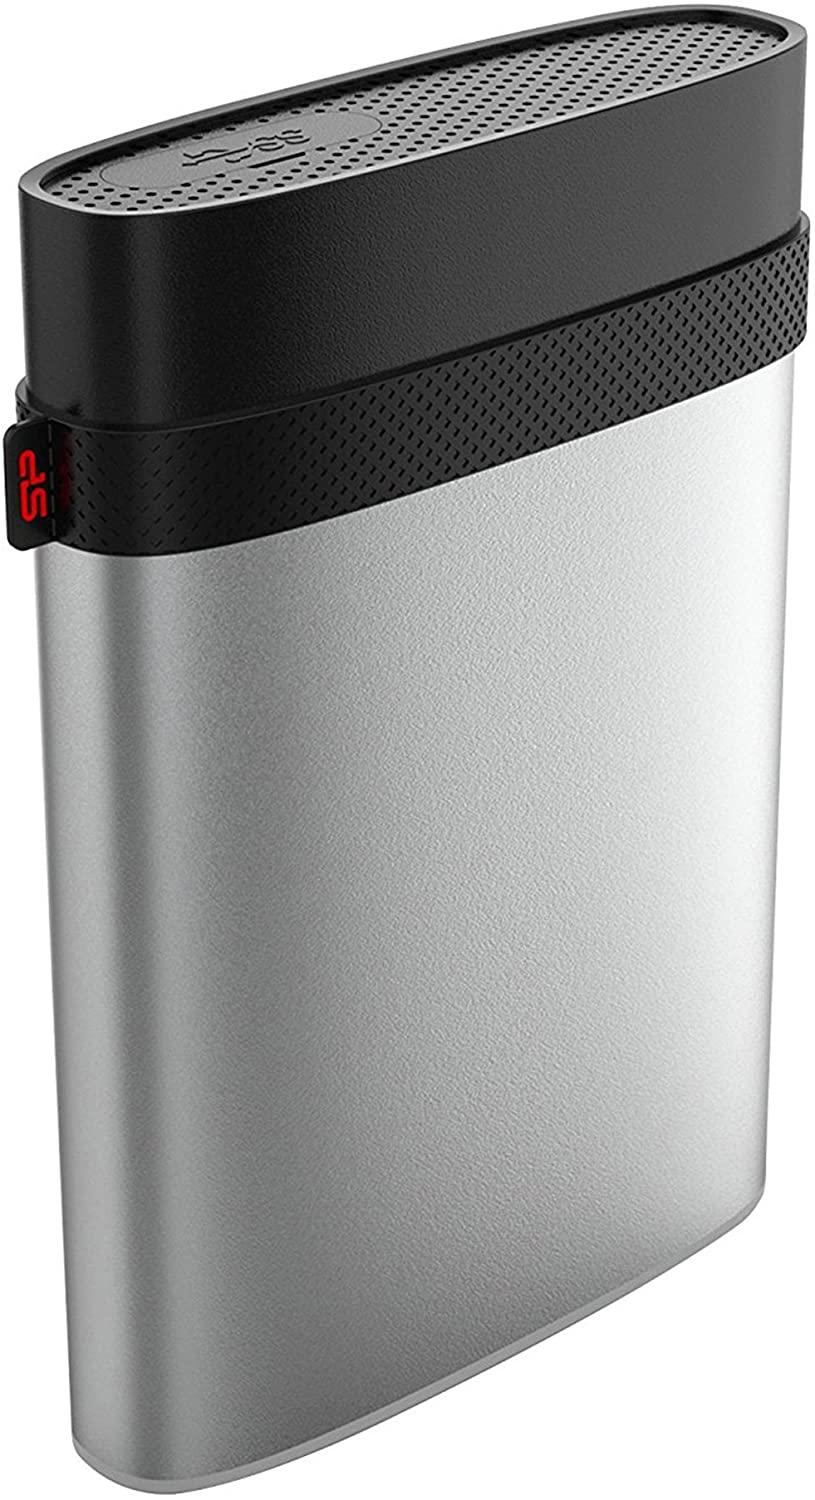 SP020TBPHDA85S3SAZ Silver Silicon Power 2TB PS4 Xbox Compatible Type C USB 3.0 Rugged Armor A85 Military Grade IP68 Shockproof // Waterproof External Portable Hard Drive for PC and Mac 2.5